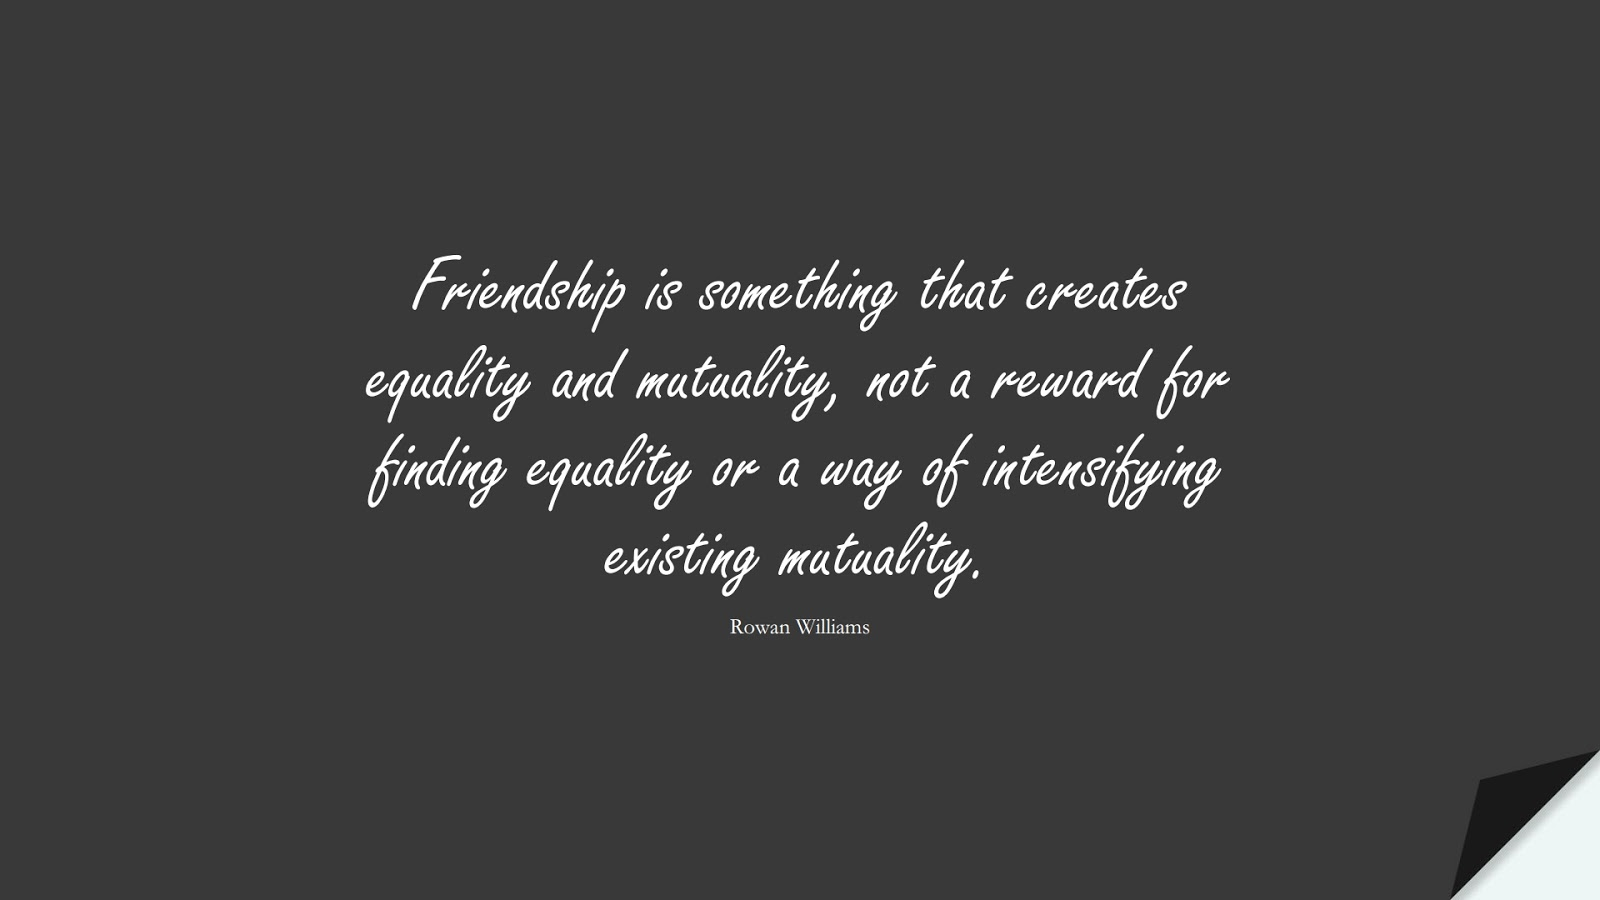 Friendship is something that creates equality and mutuality, not a reward for finding equality or a way of intensifying existing mutuality. (Rowan Williams);  #FriendshipQuotes